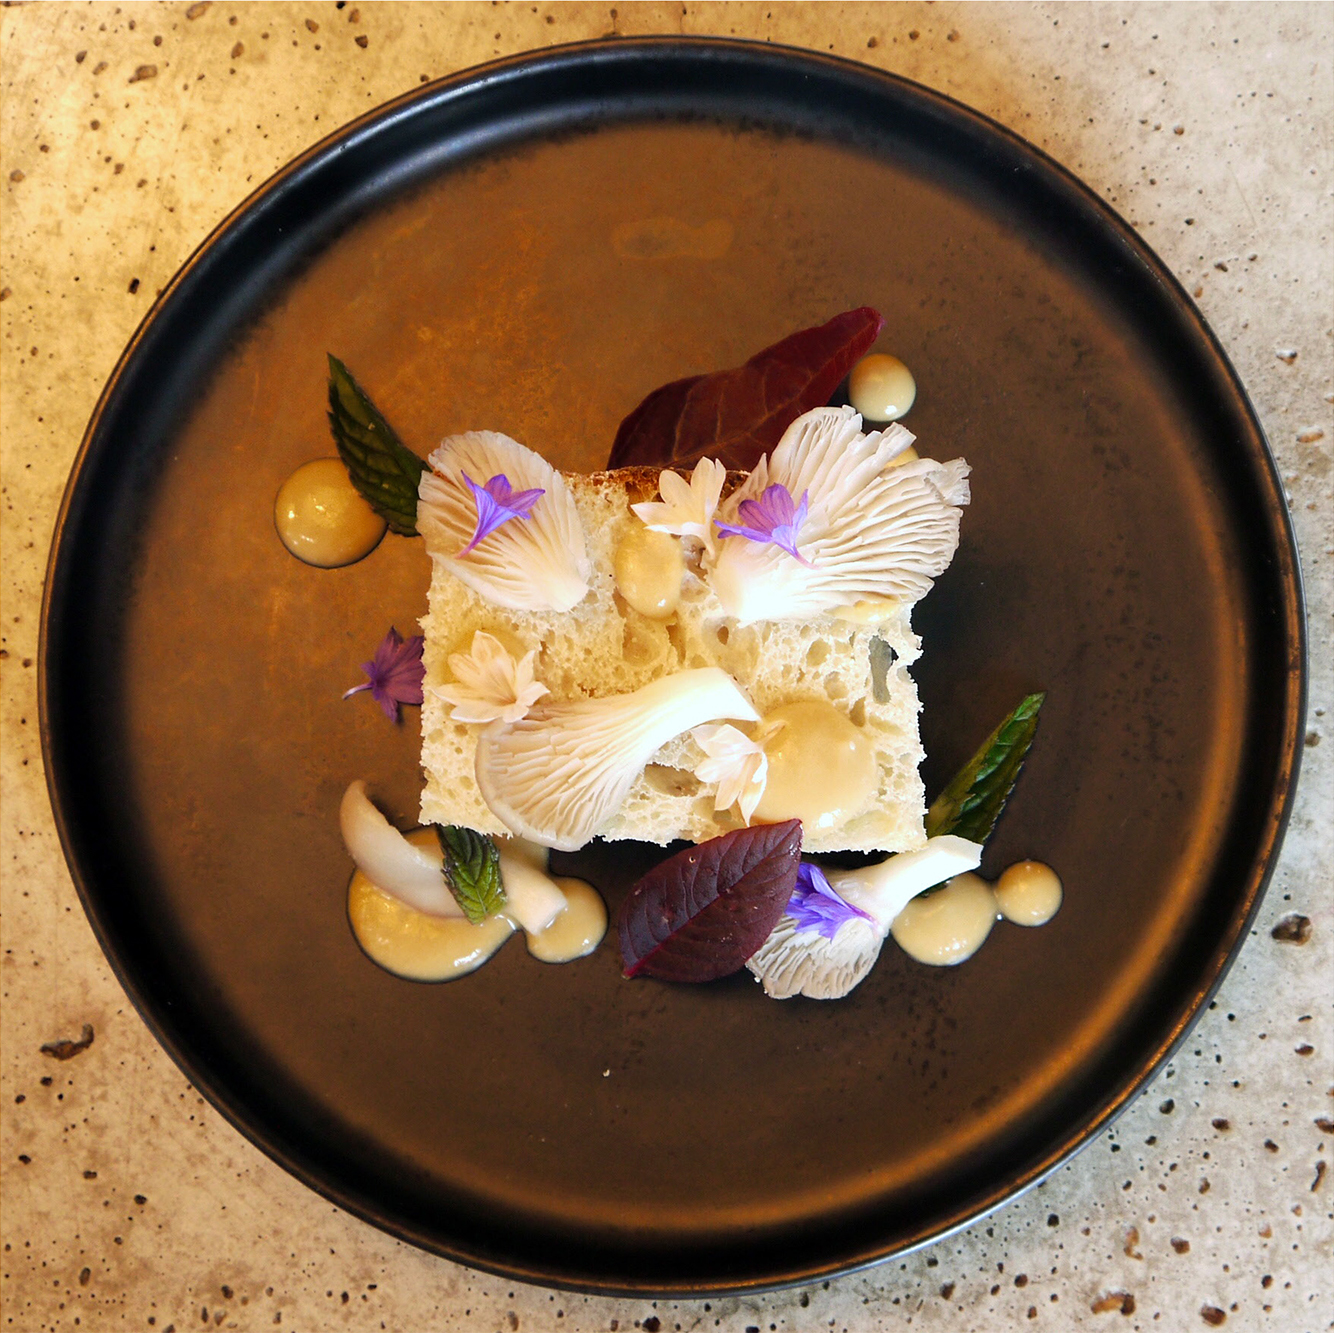 Sourdough Focaccia, Whipped Miso & Lacto-Fermented Oyster Mushrooms.